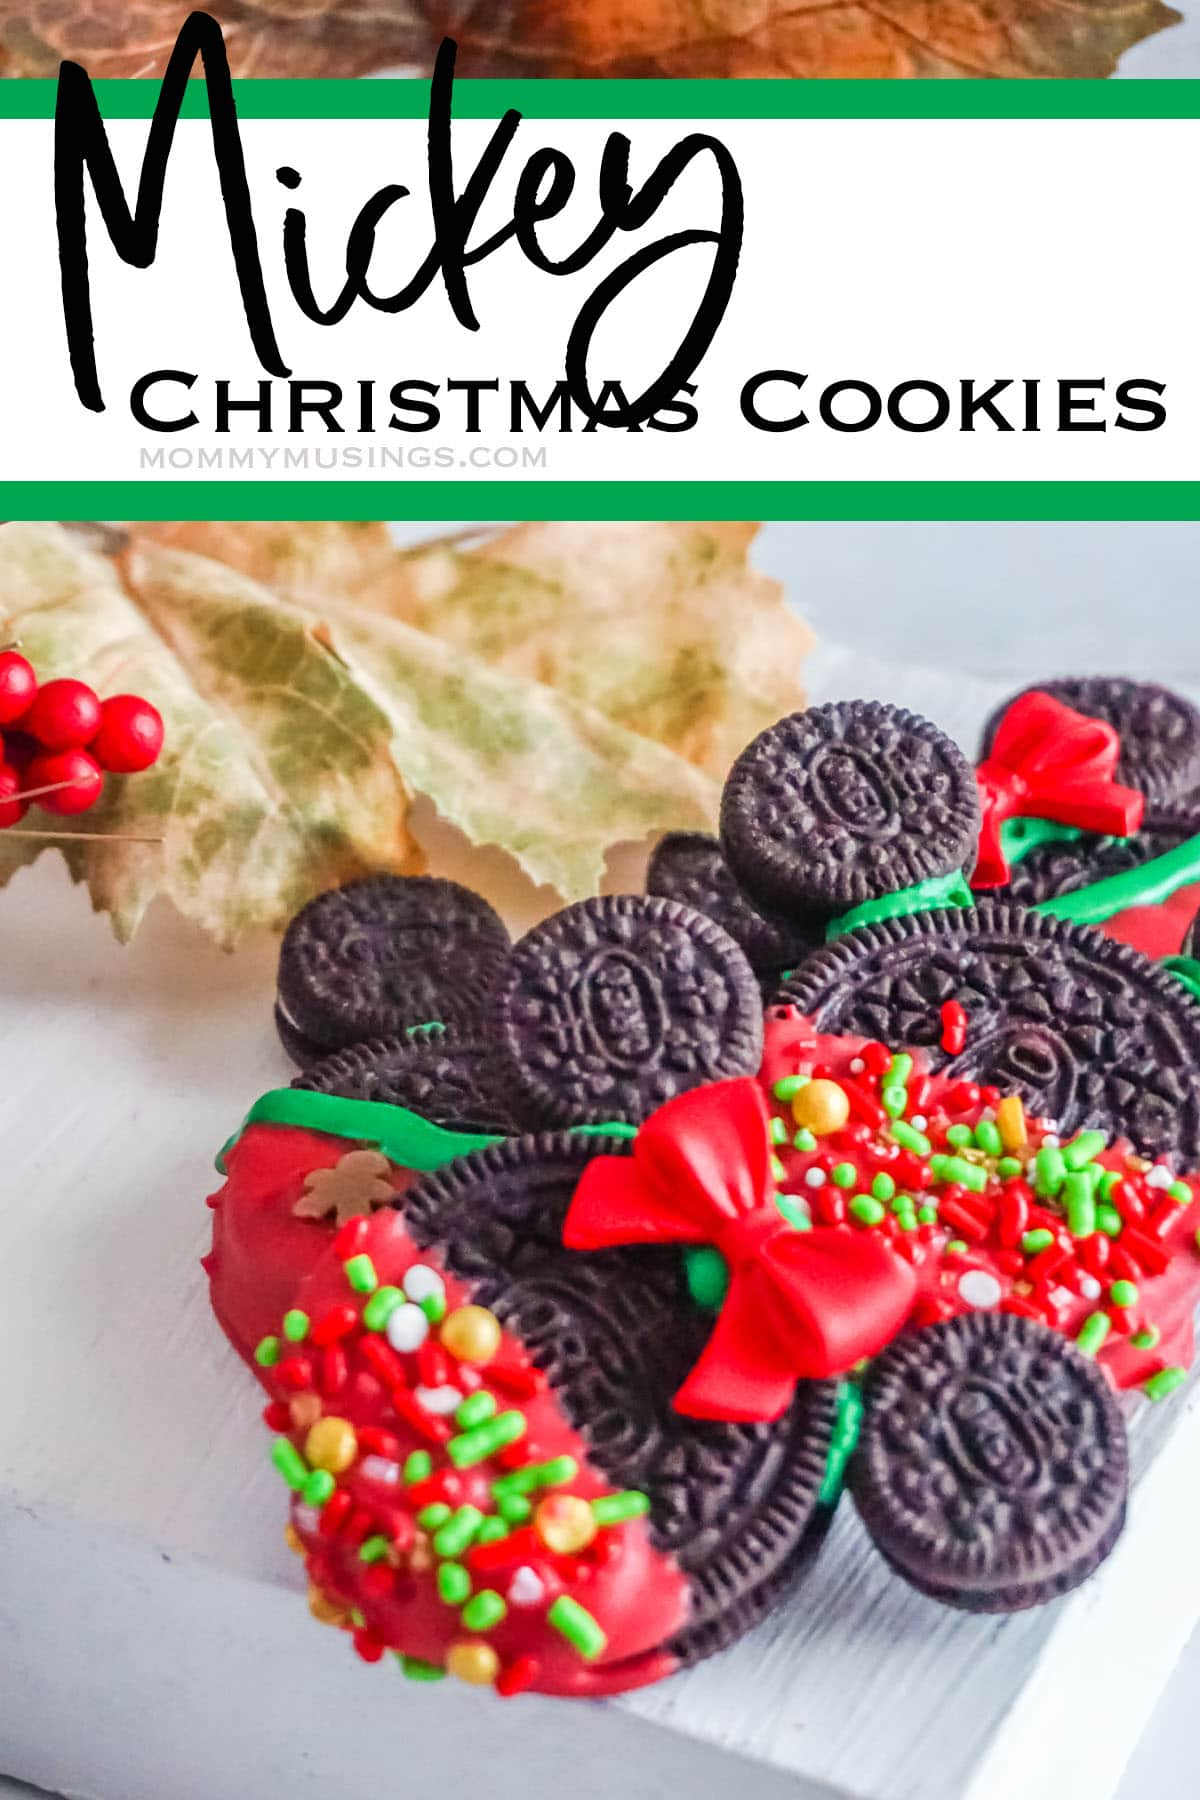 oreo mickey cookies for christmas with text which reads mickey christmas cookies